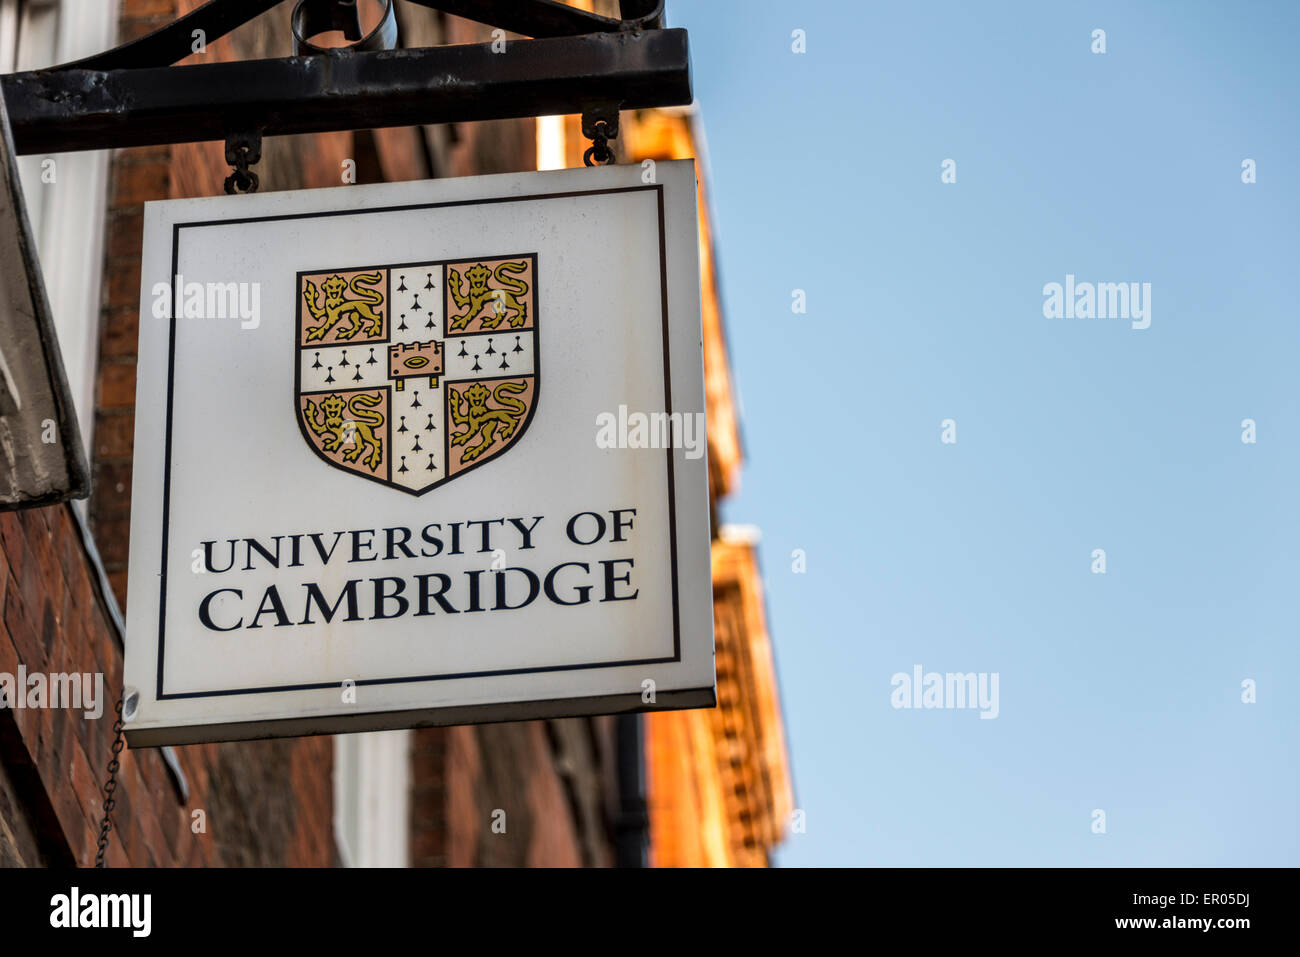 A sign displaying the coat of arms of the University of Cambridge - Stock Image